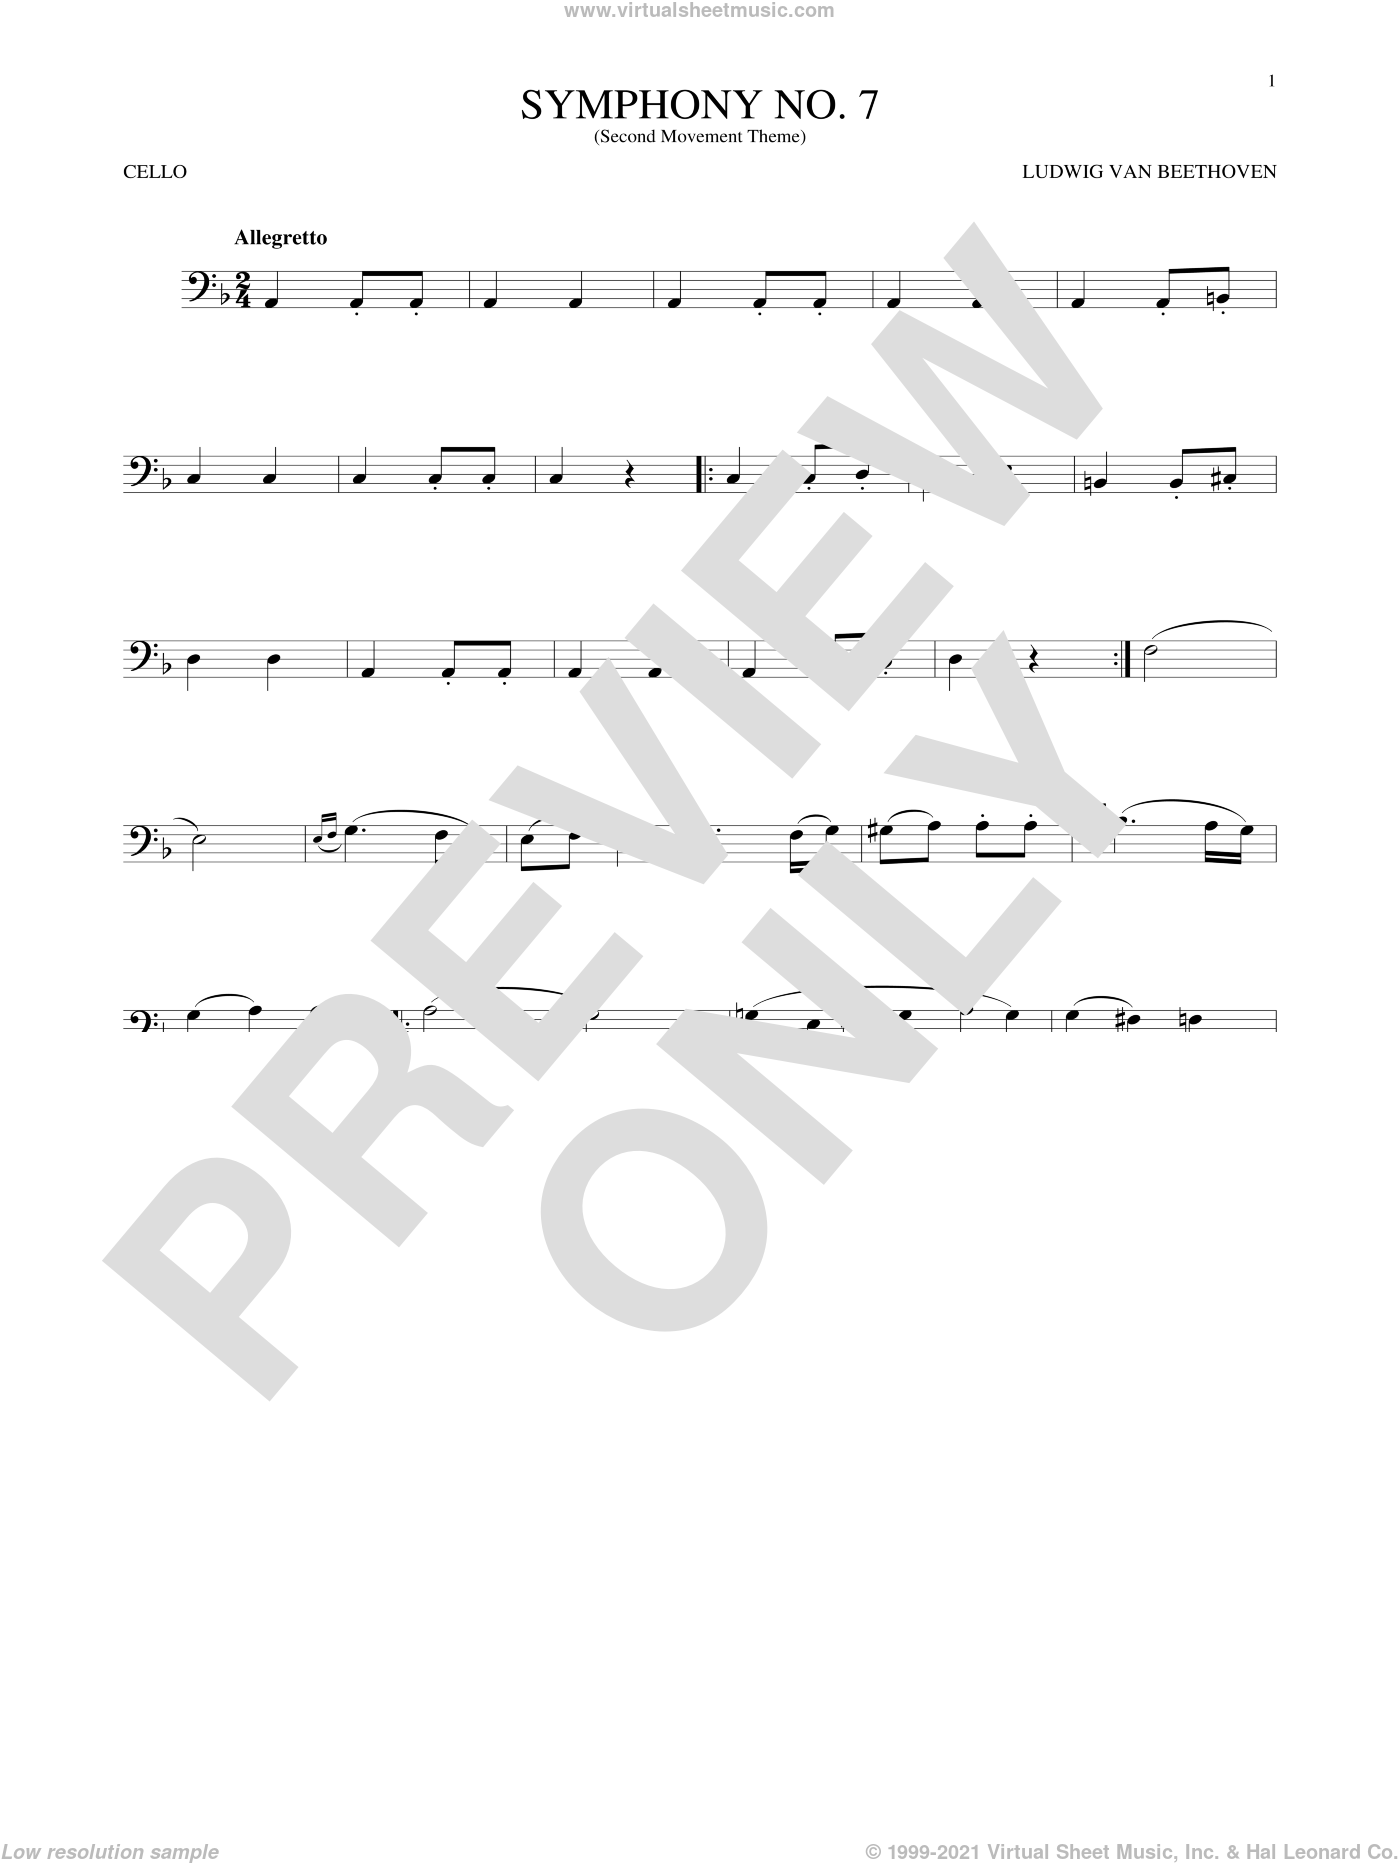 Symphony No. 7 In A Major, Second Movement (Allegretto) sheet music for cello solo by Ludwig van Beethoven, classical score, intermediate skill level